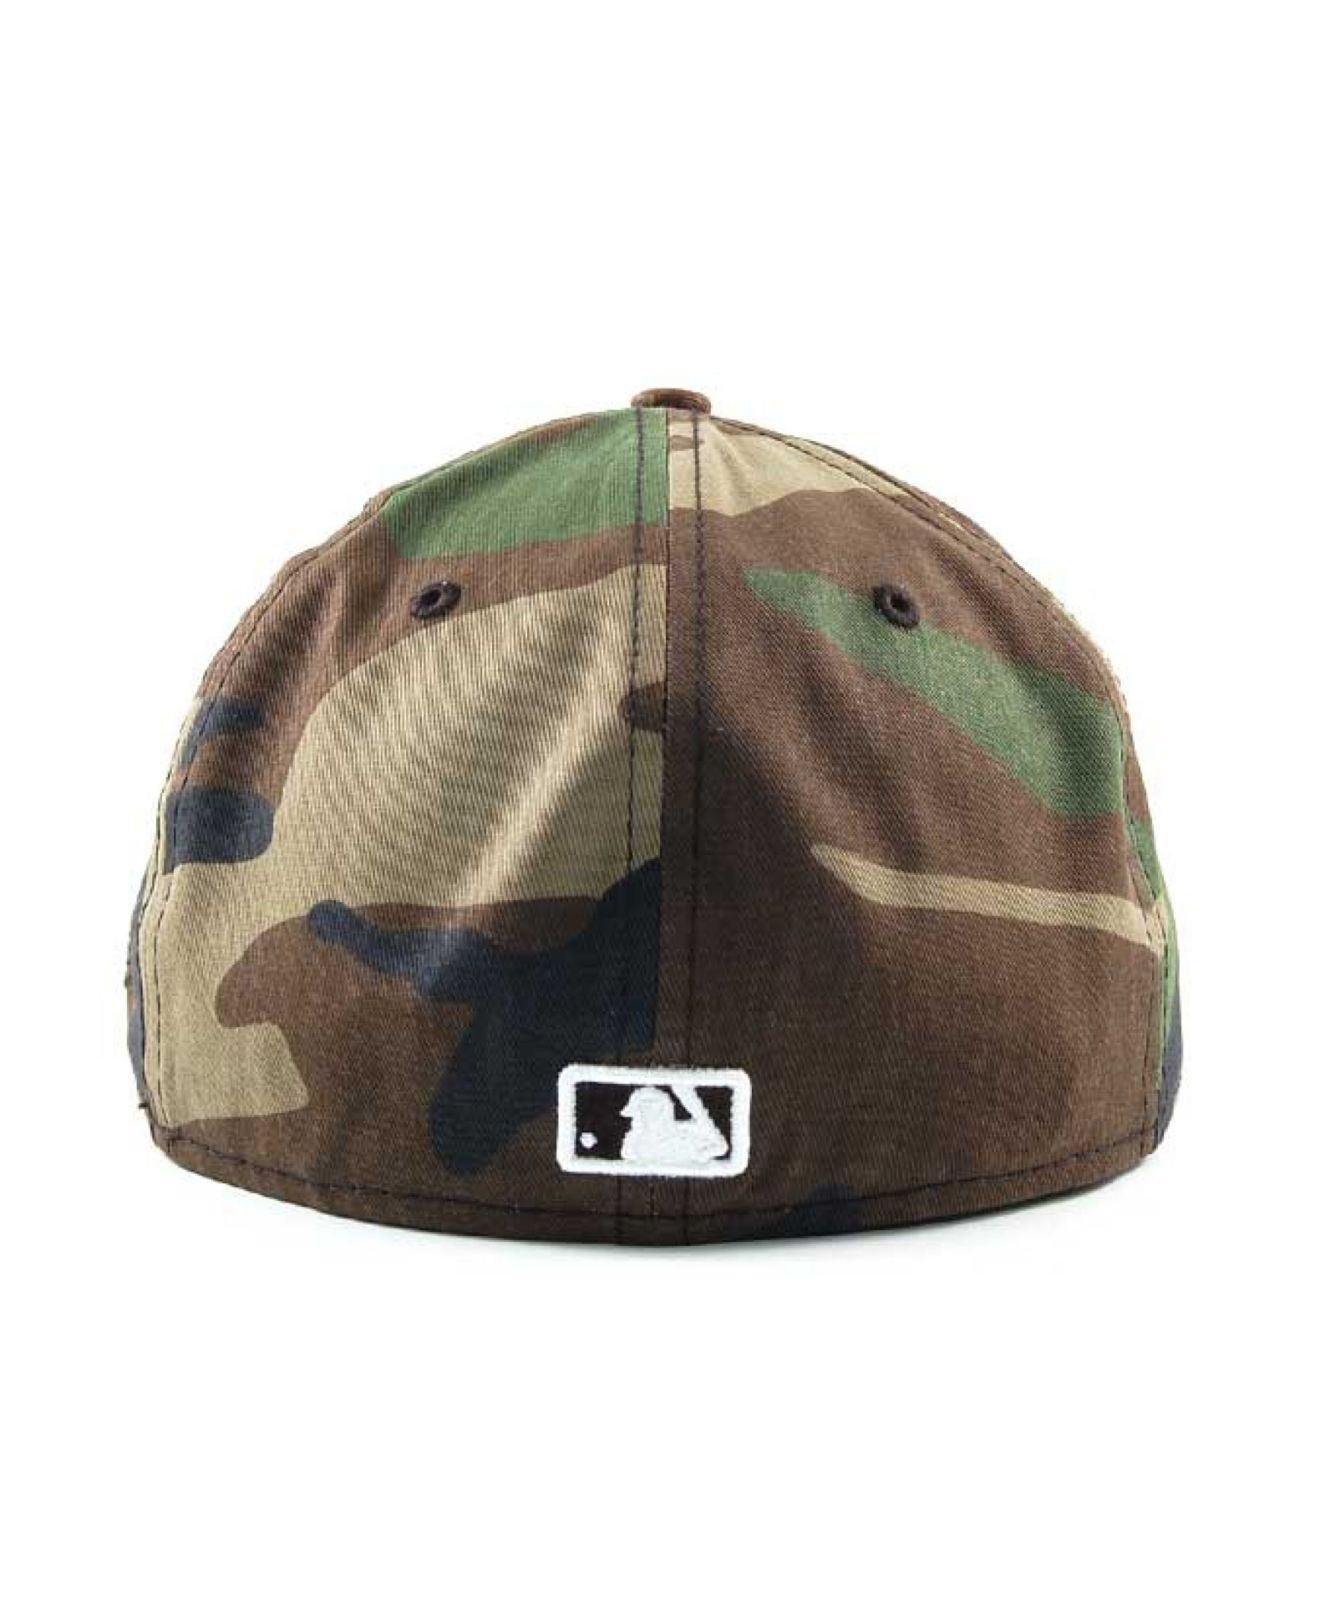 buy online 4afb3 9df13 ... uk lyst ktz texas rangers mlb bc camo 59fifty cap in green for men  3a62a 1112c